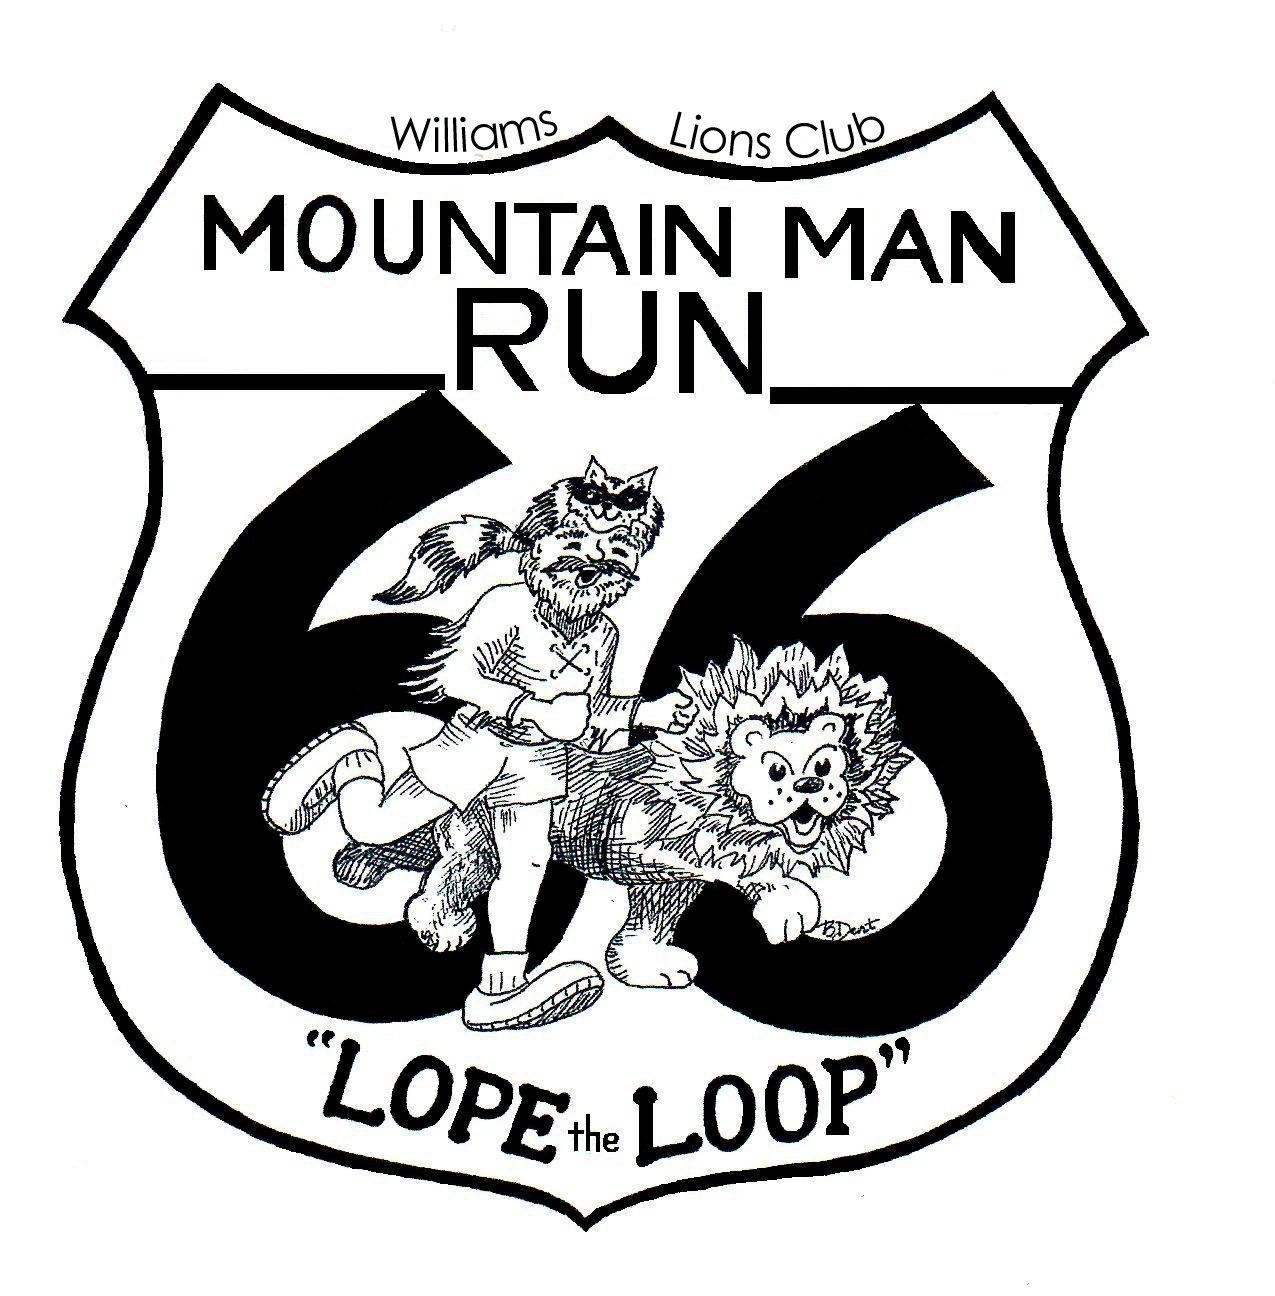 Logo+with+Williams+Lions+Club.jpg